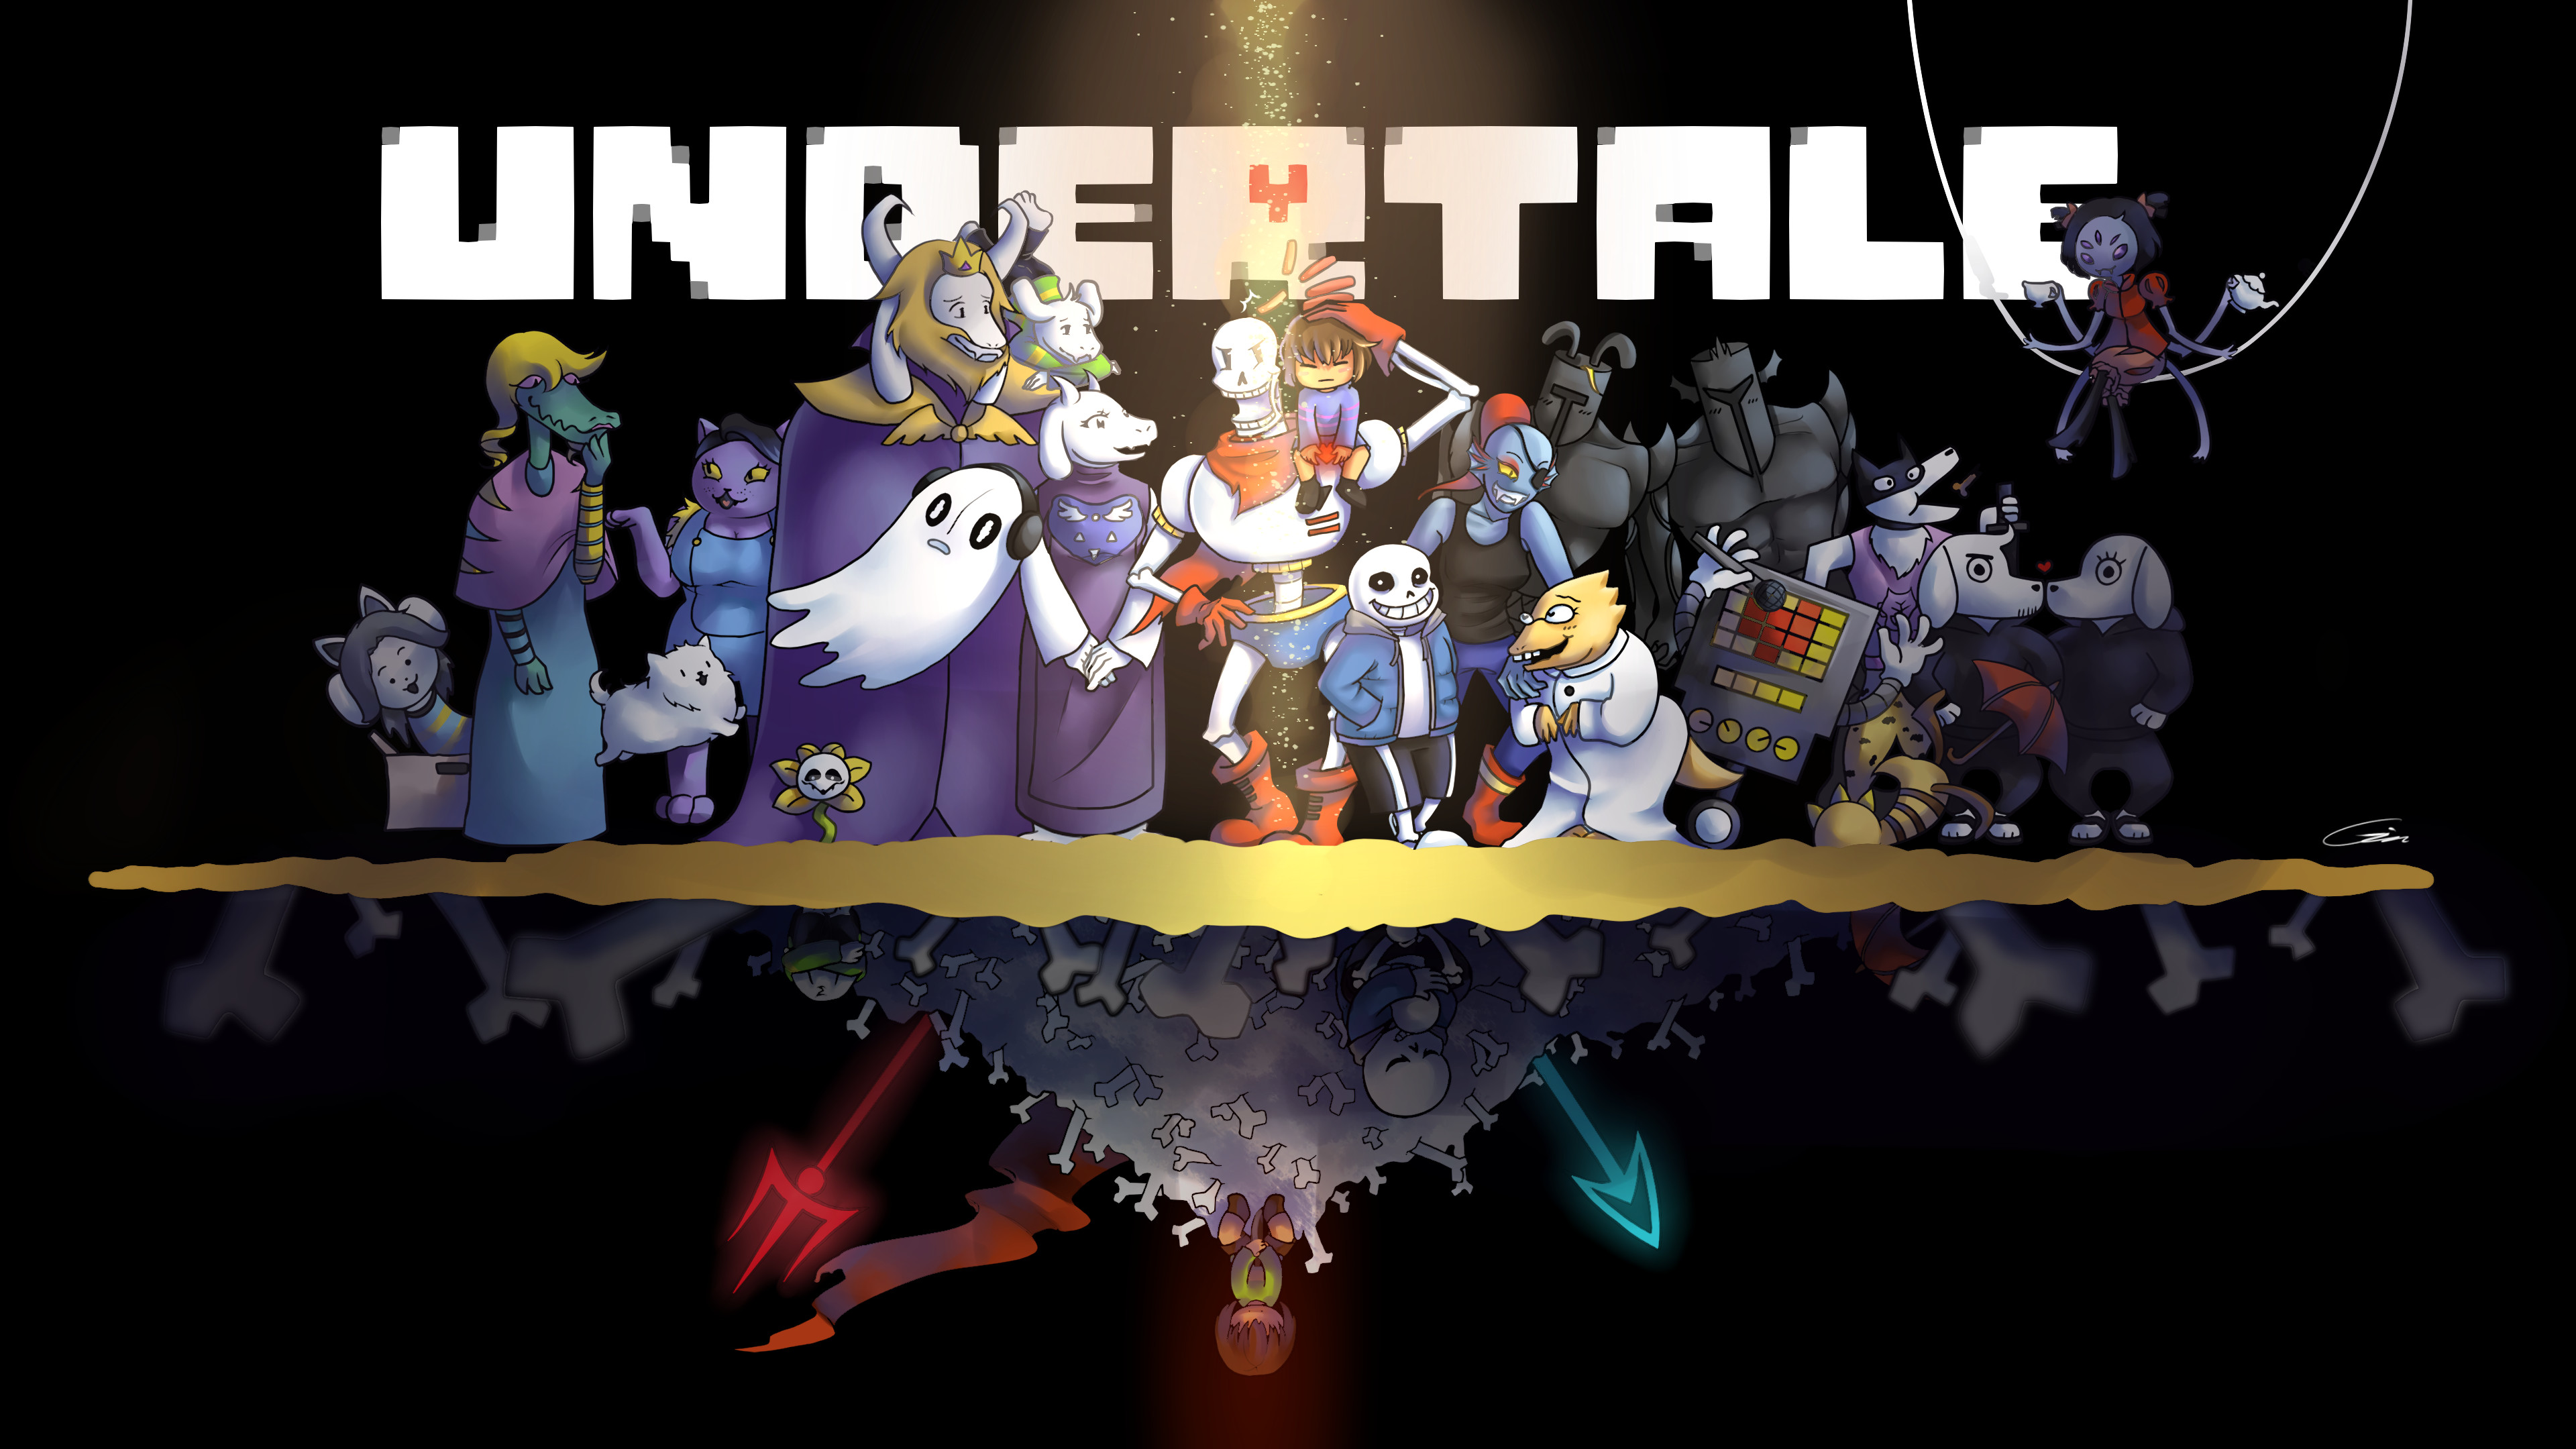 ll give Undertale that it has a cute, balanced, and memorable cast .